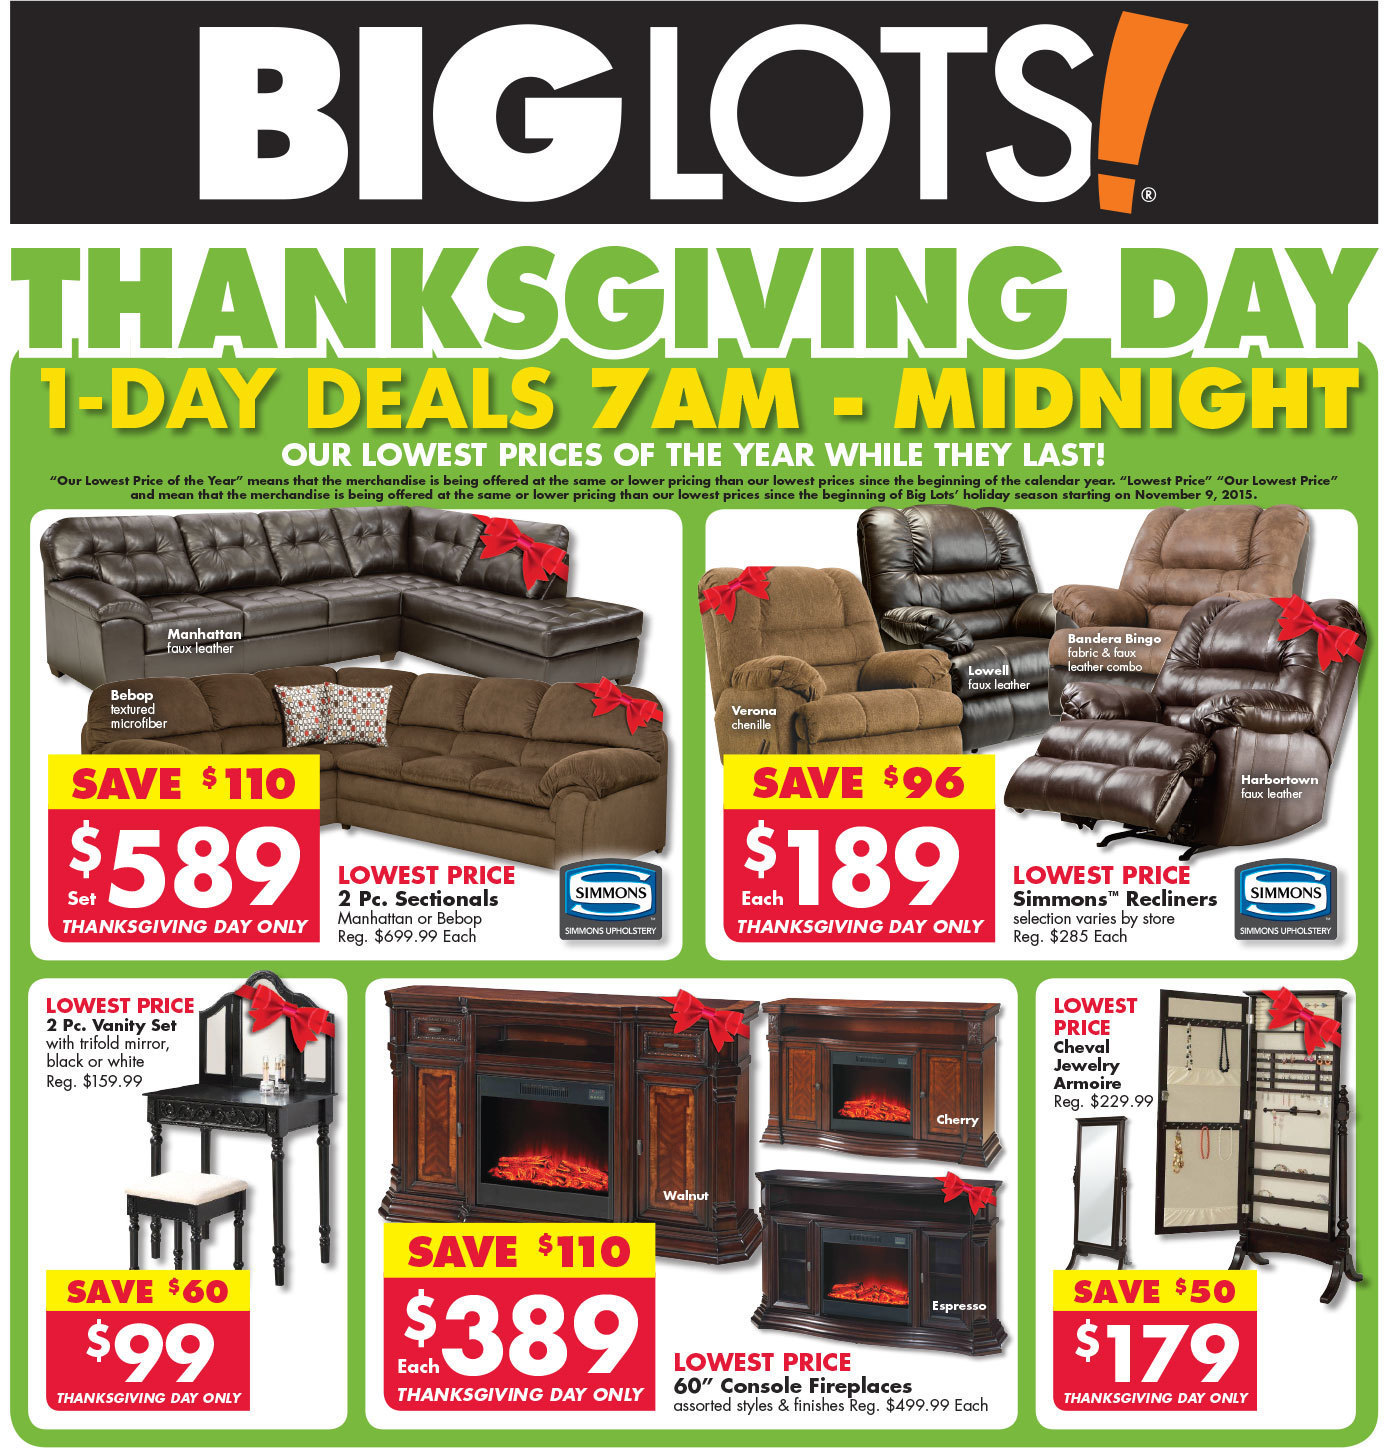 Big Lots Black Friday 2015 Ad Page 1